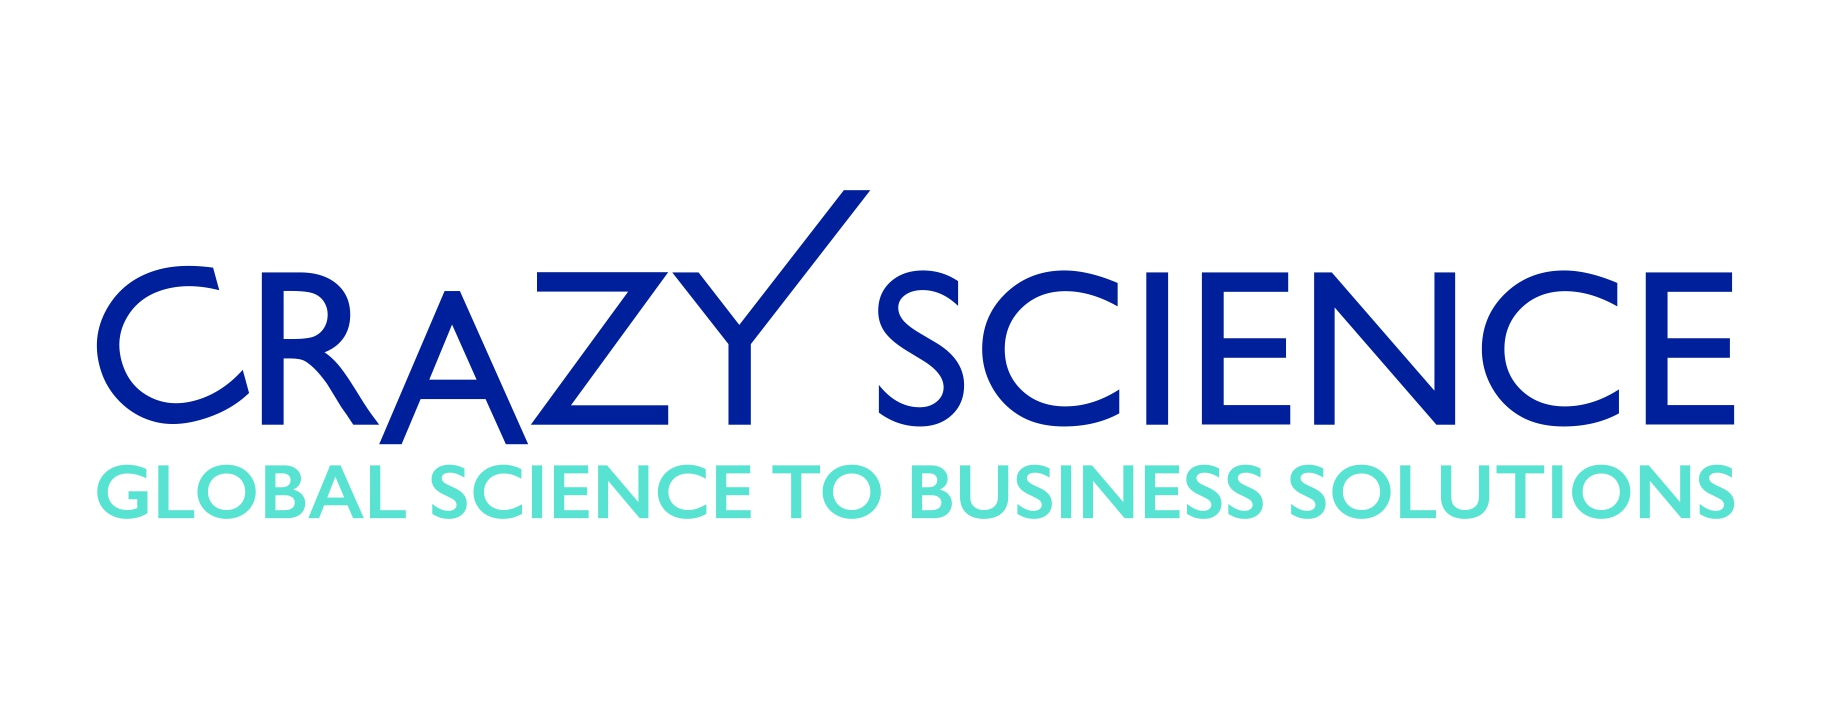 Logo Crazy Science & Business